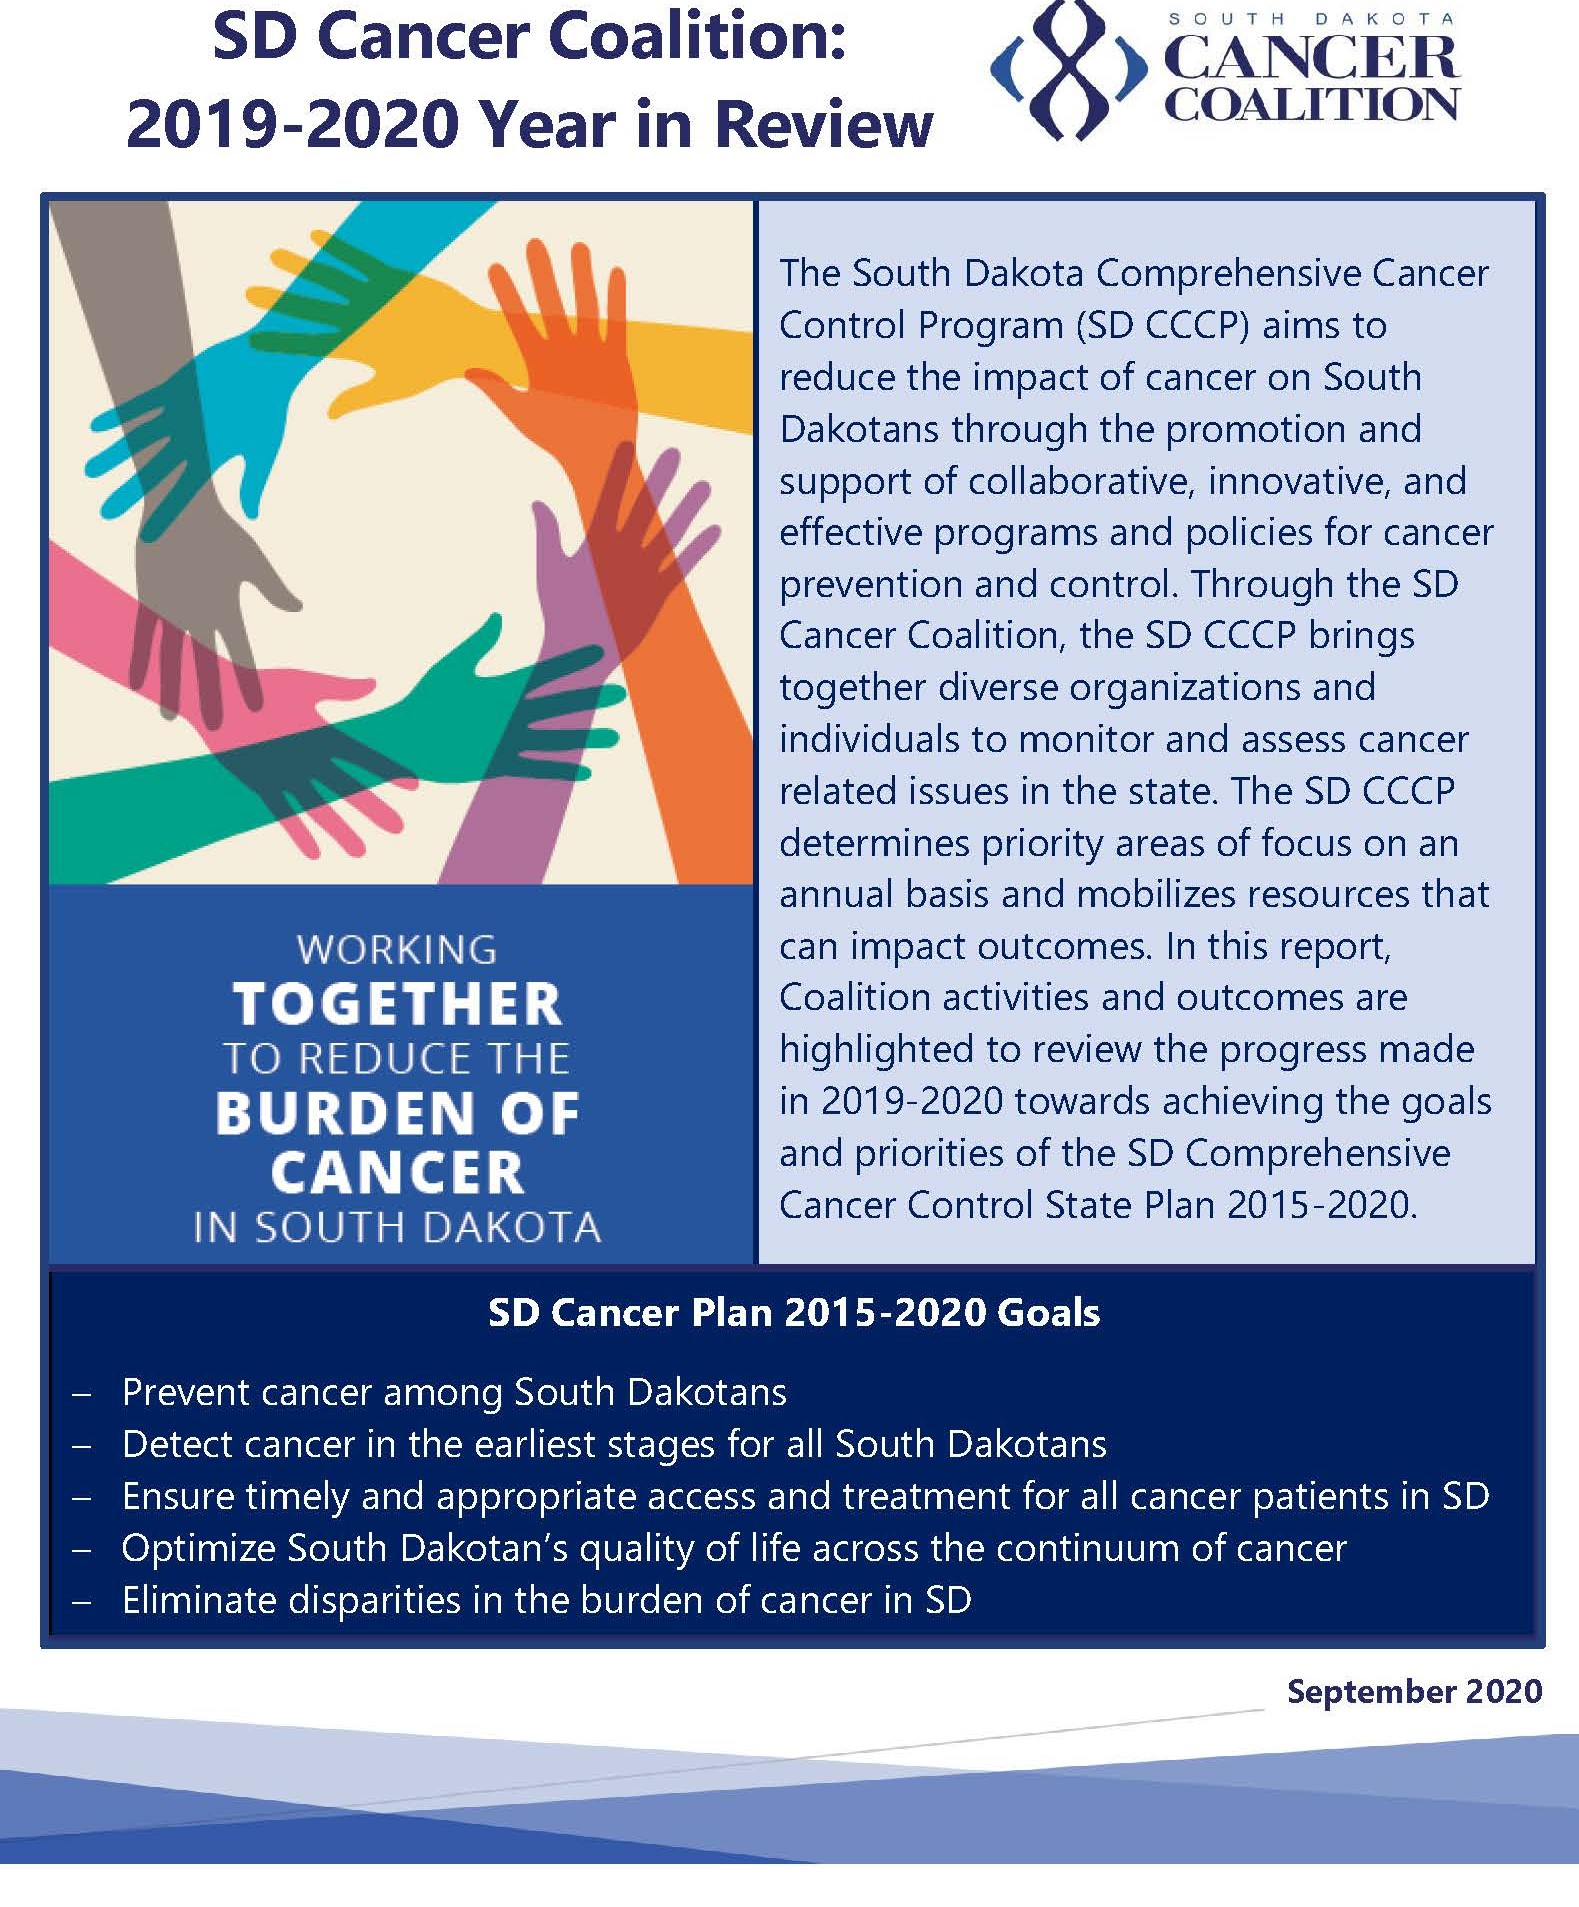 SD Cancer Coalition 2019-2020 Year in Review